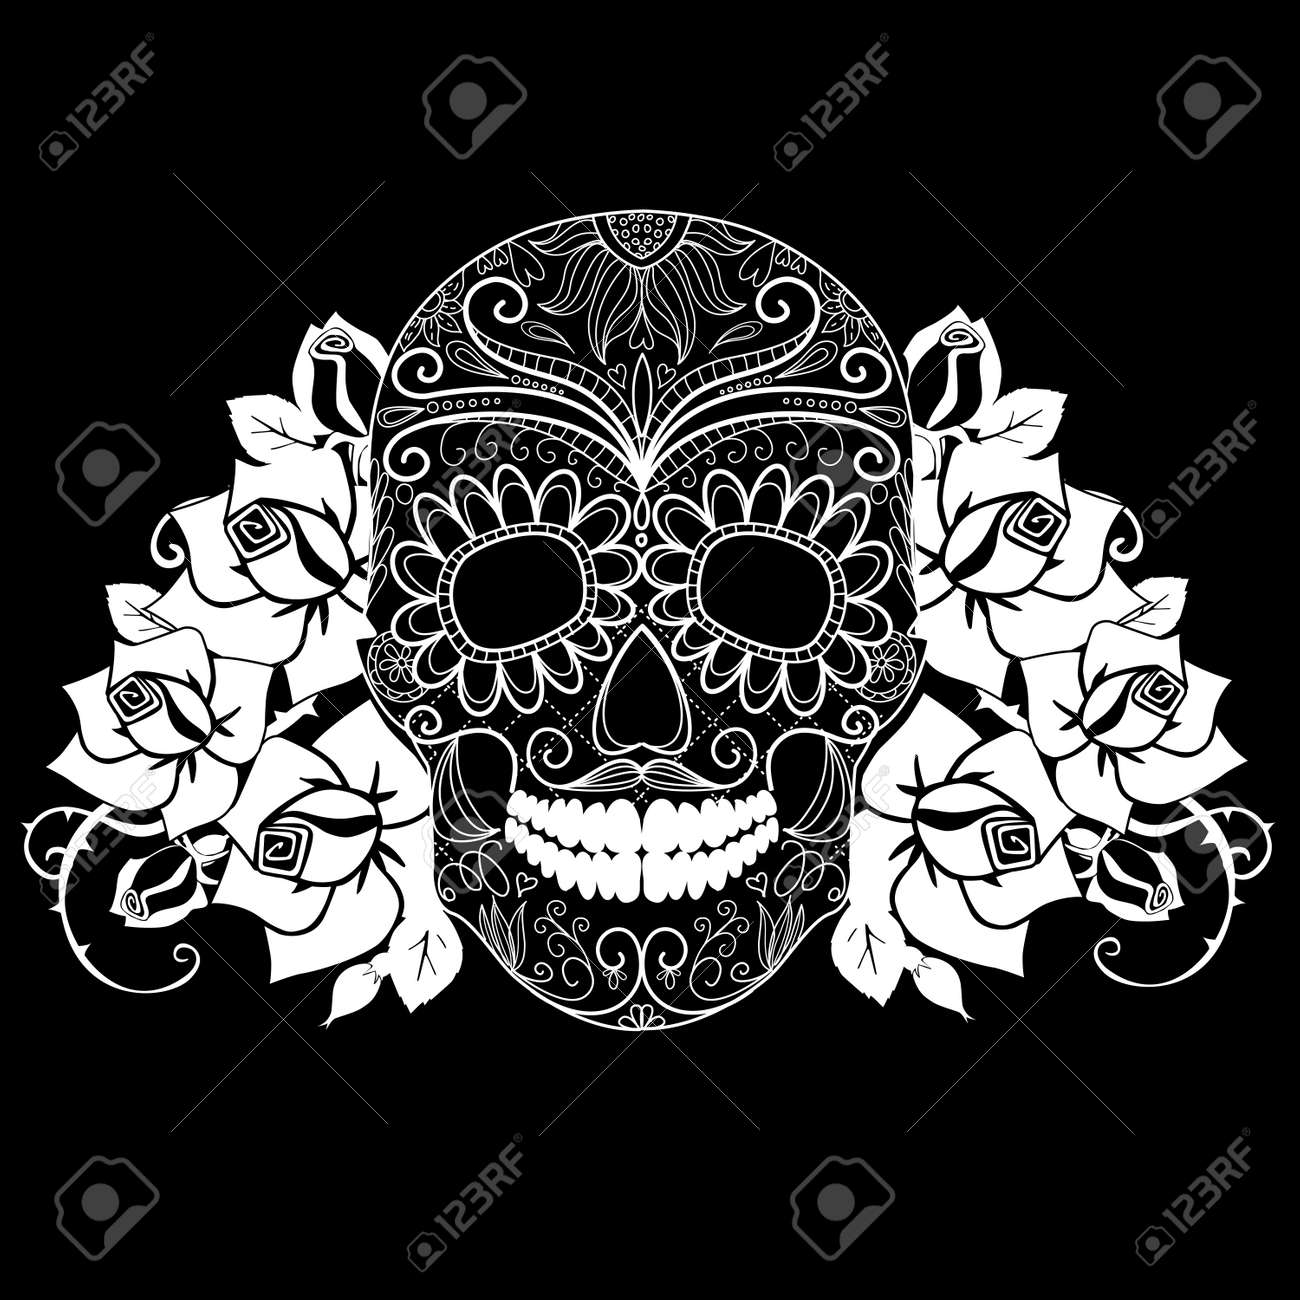 Black Rose And Skull Wallpaper Skull And Roses Black And